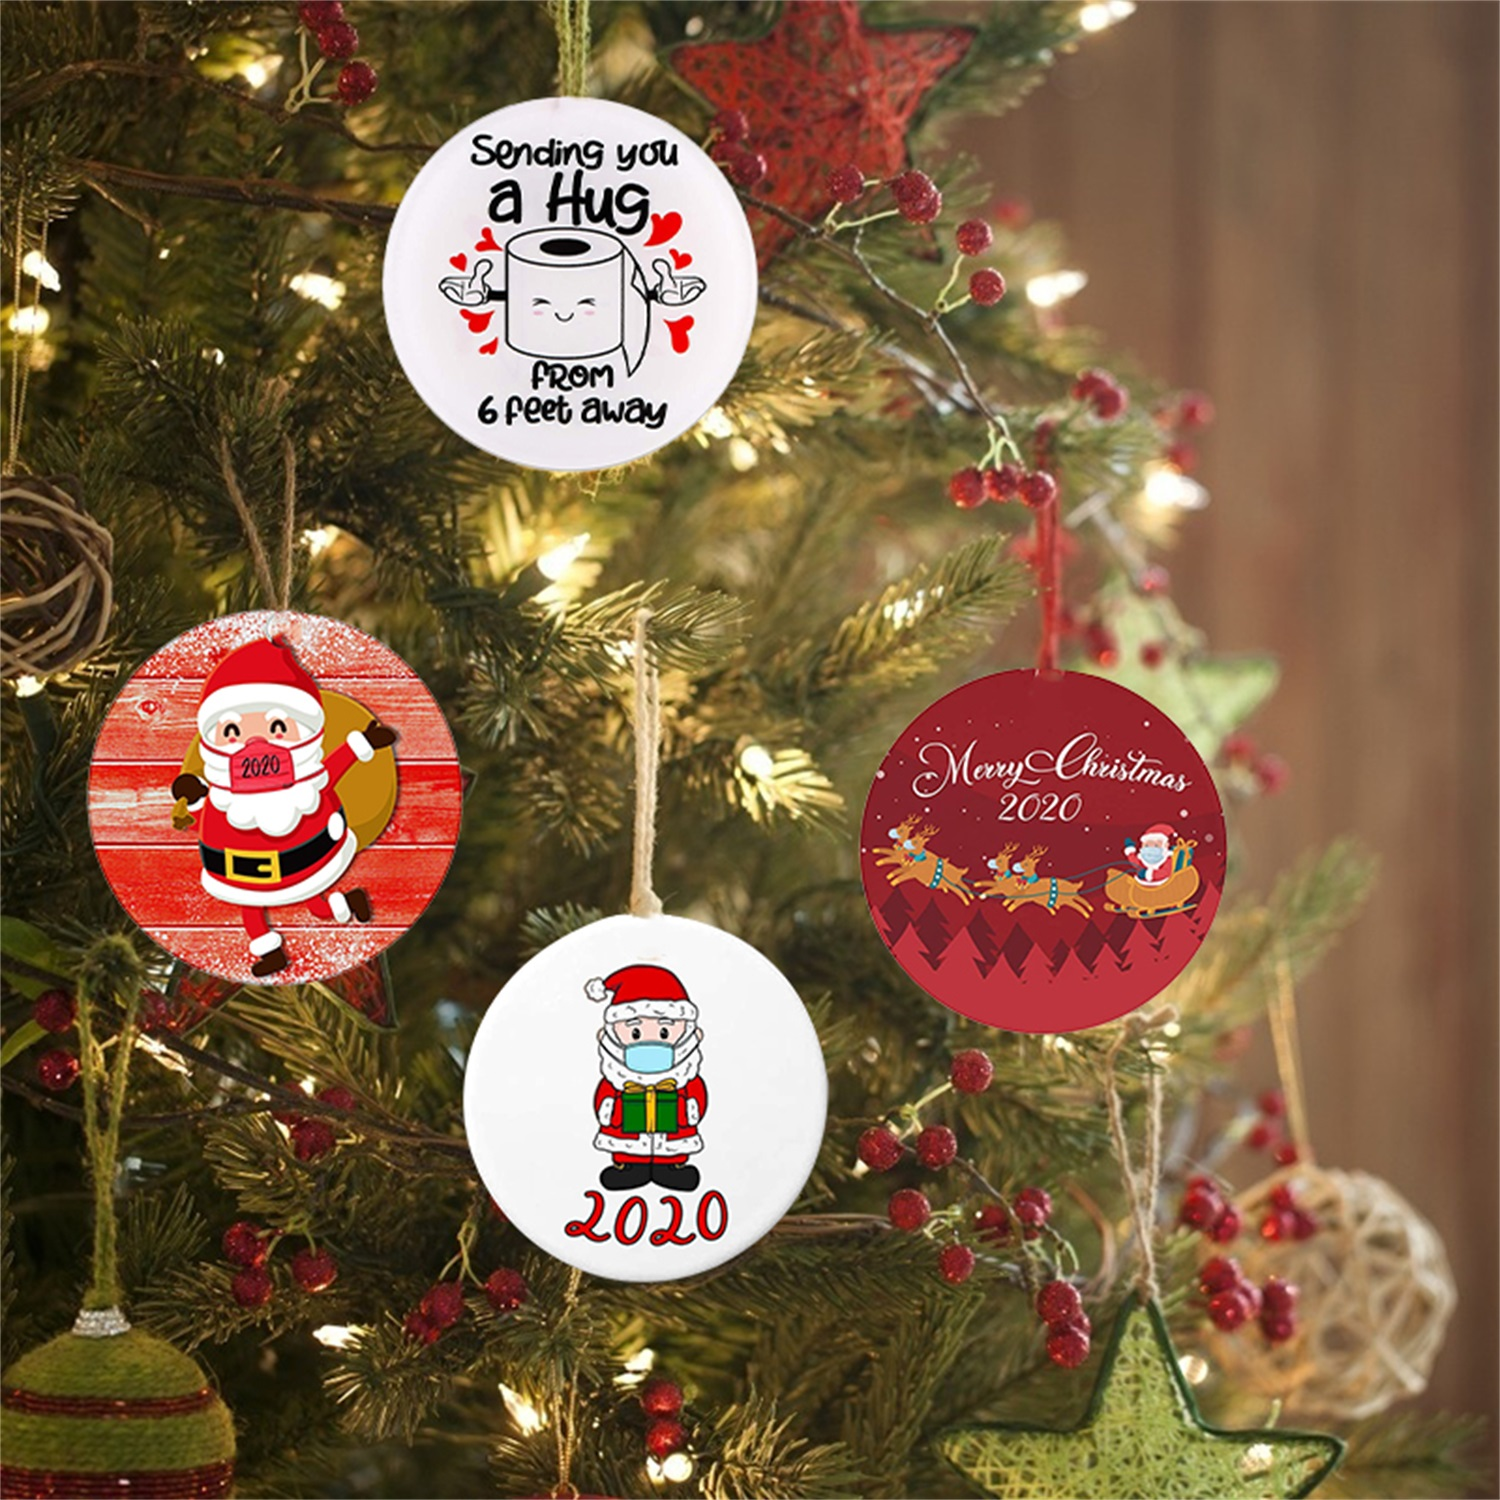 Christmas Ornaments-Xmas Tree-Holiday Decor. 2020 Annual Events Christmas Gifts